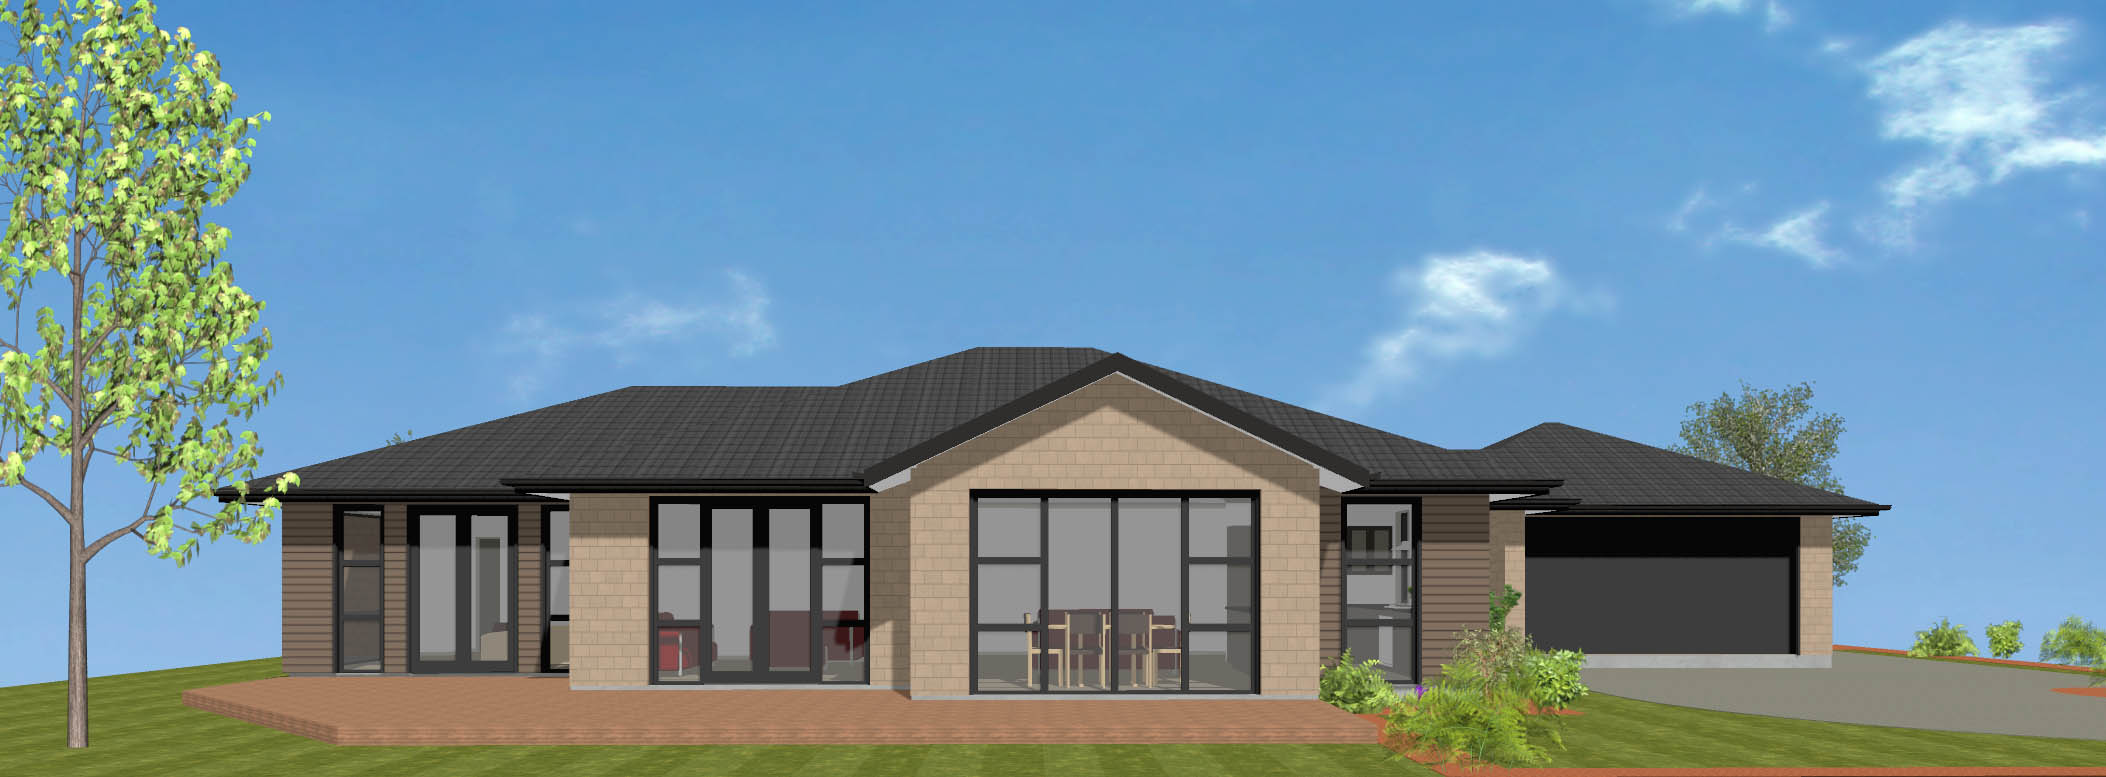 Riverton new house plan and design wellington kapiti for Wellington house designs